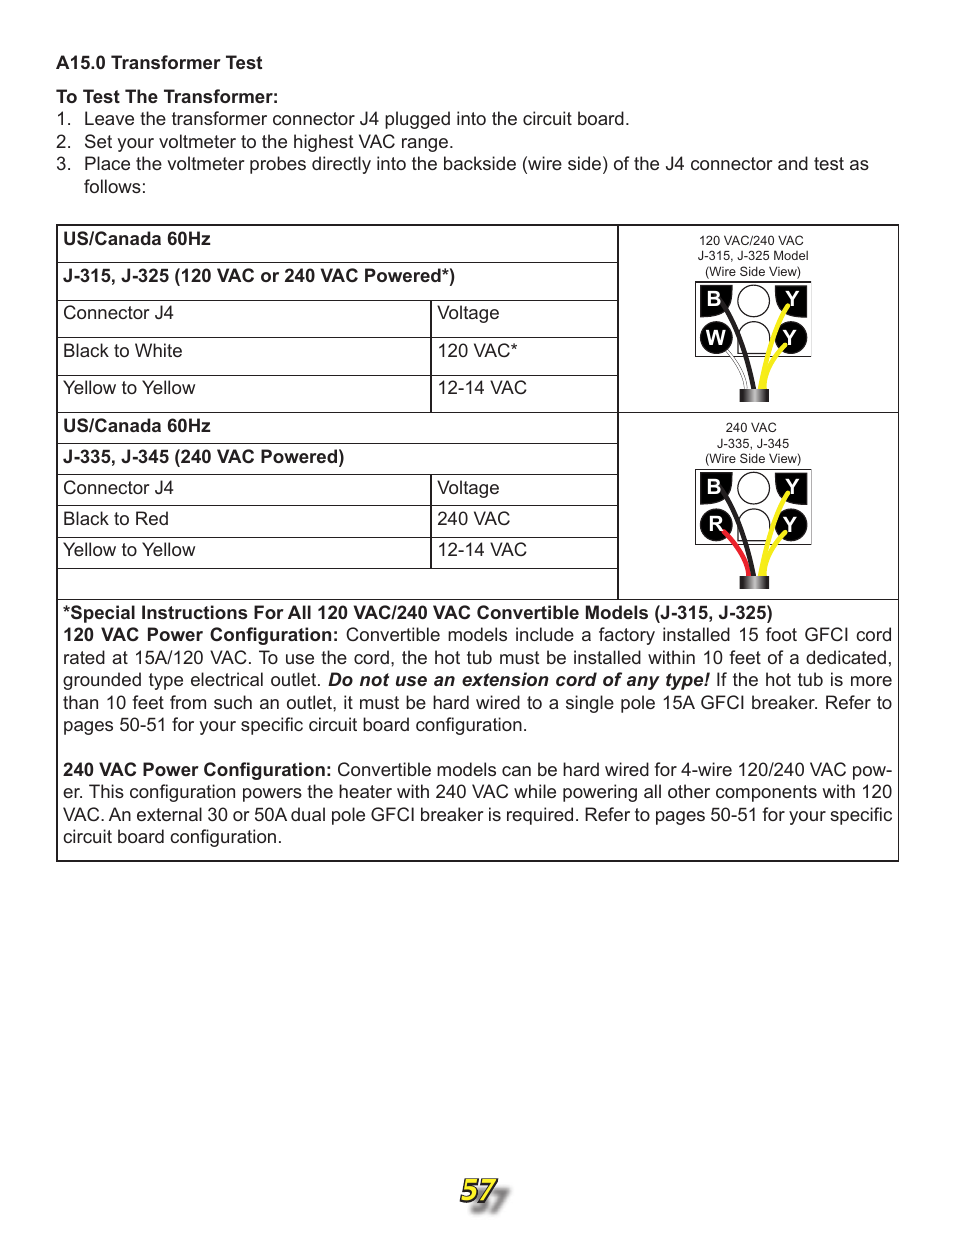 A15.0 transformer test | Jacuzzi j315 User Manual | Page 57 / 62 on